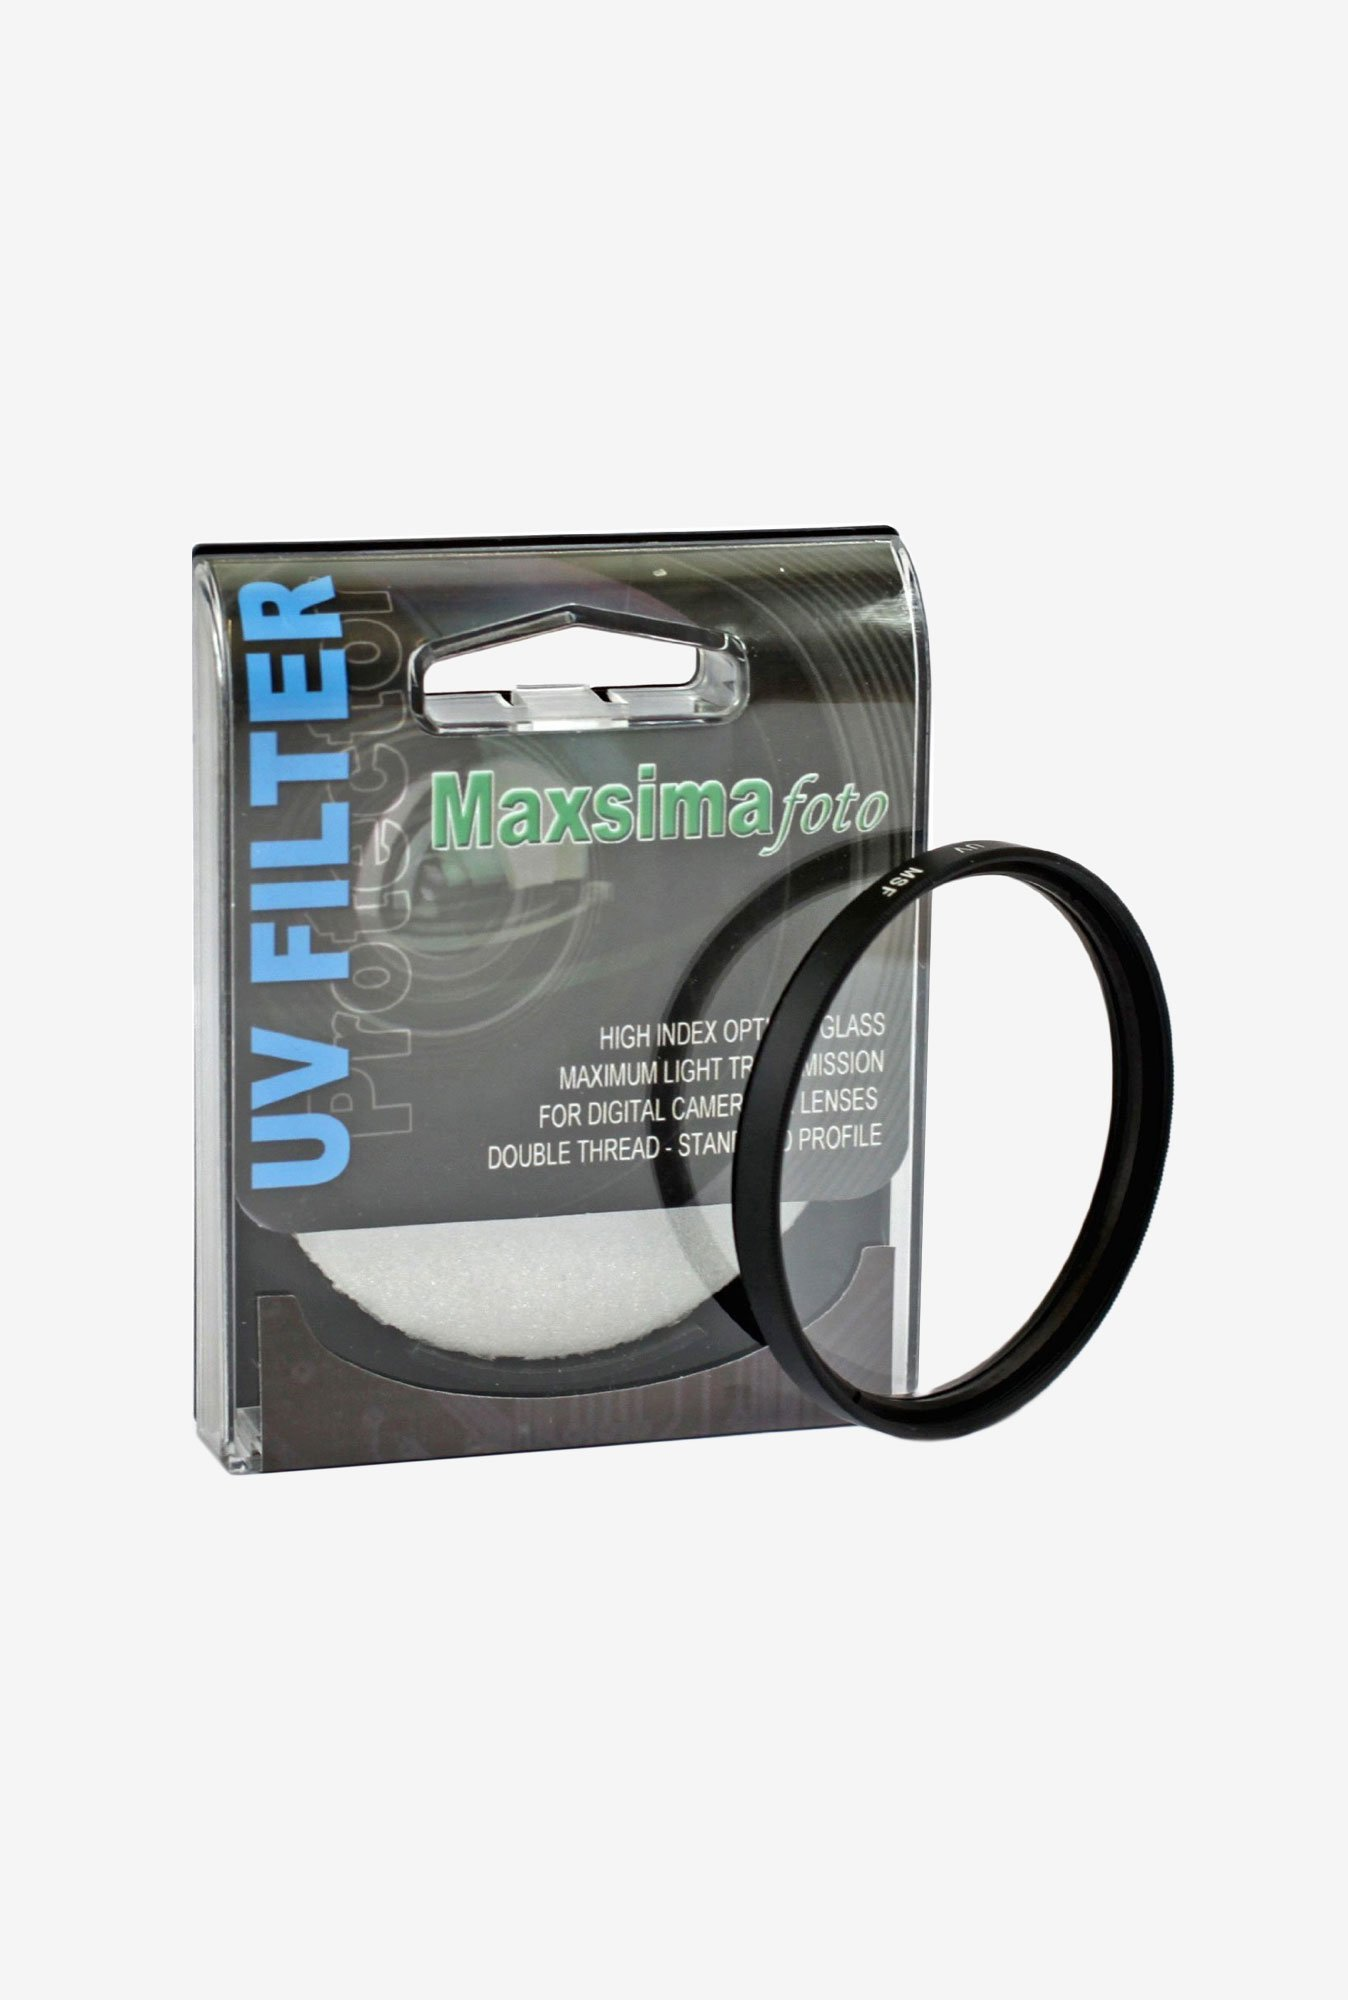 Maxsimafoto 62mm UV Lens Filter for Tamron 70-300mm